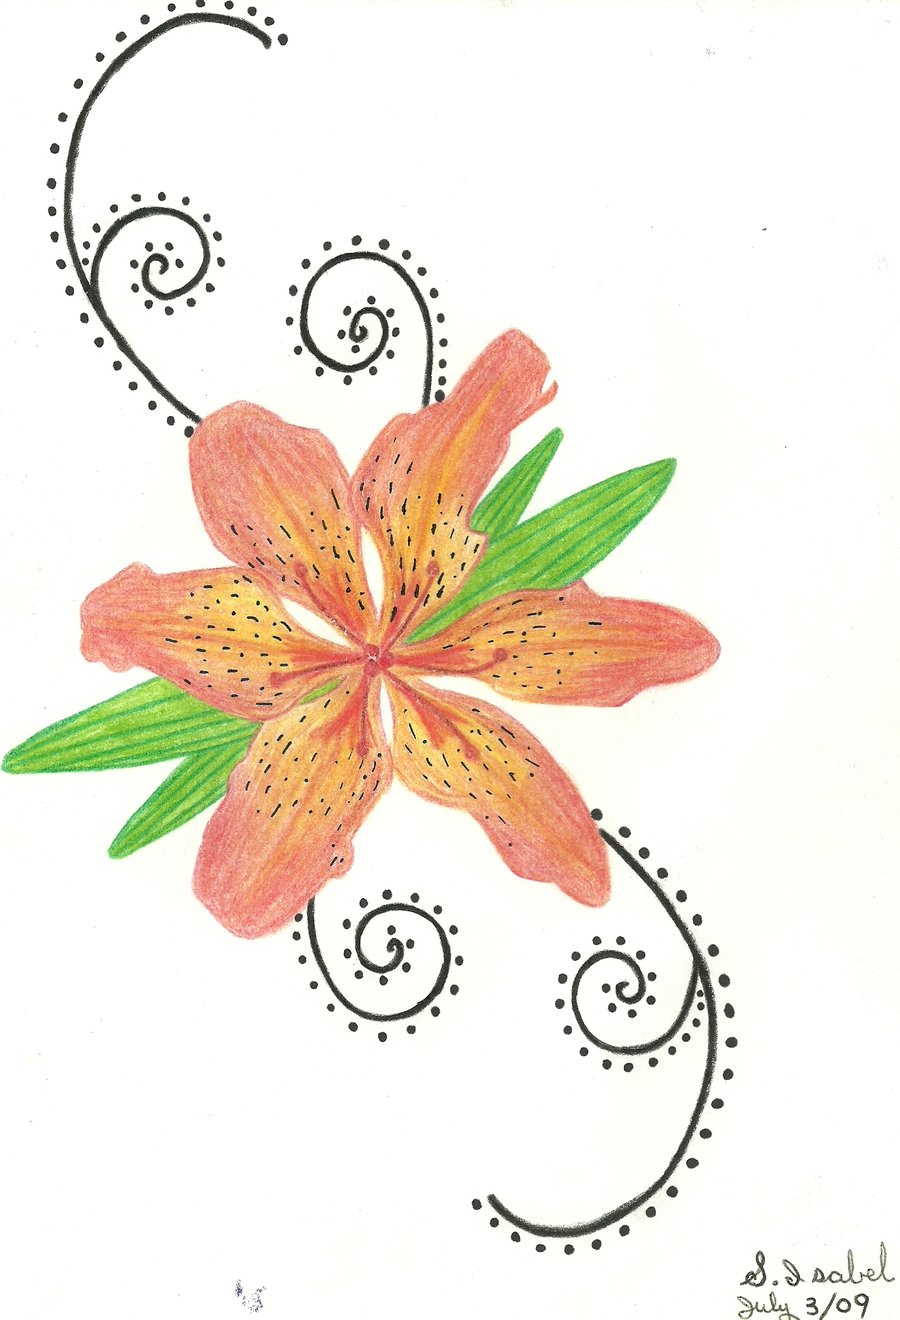 59 beautiful tiger lily tattoos ideas tiger lily tattoo design by isabel izmirmasajfo Choice Image